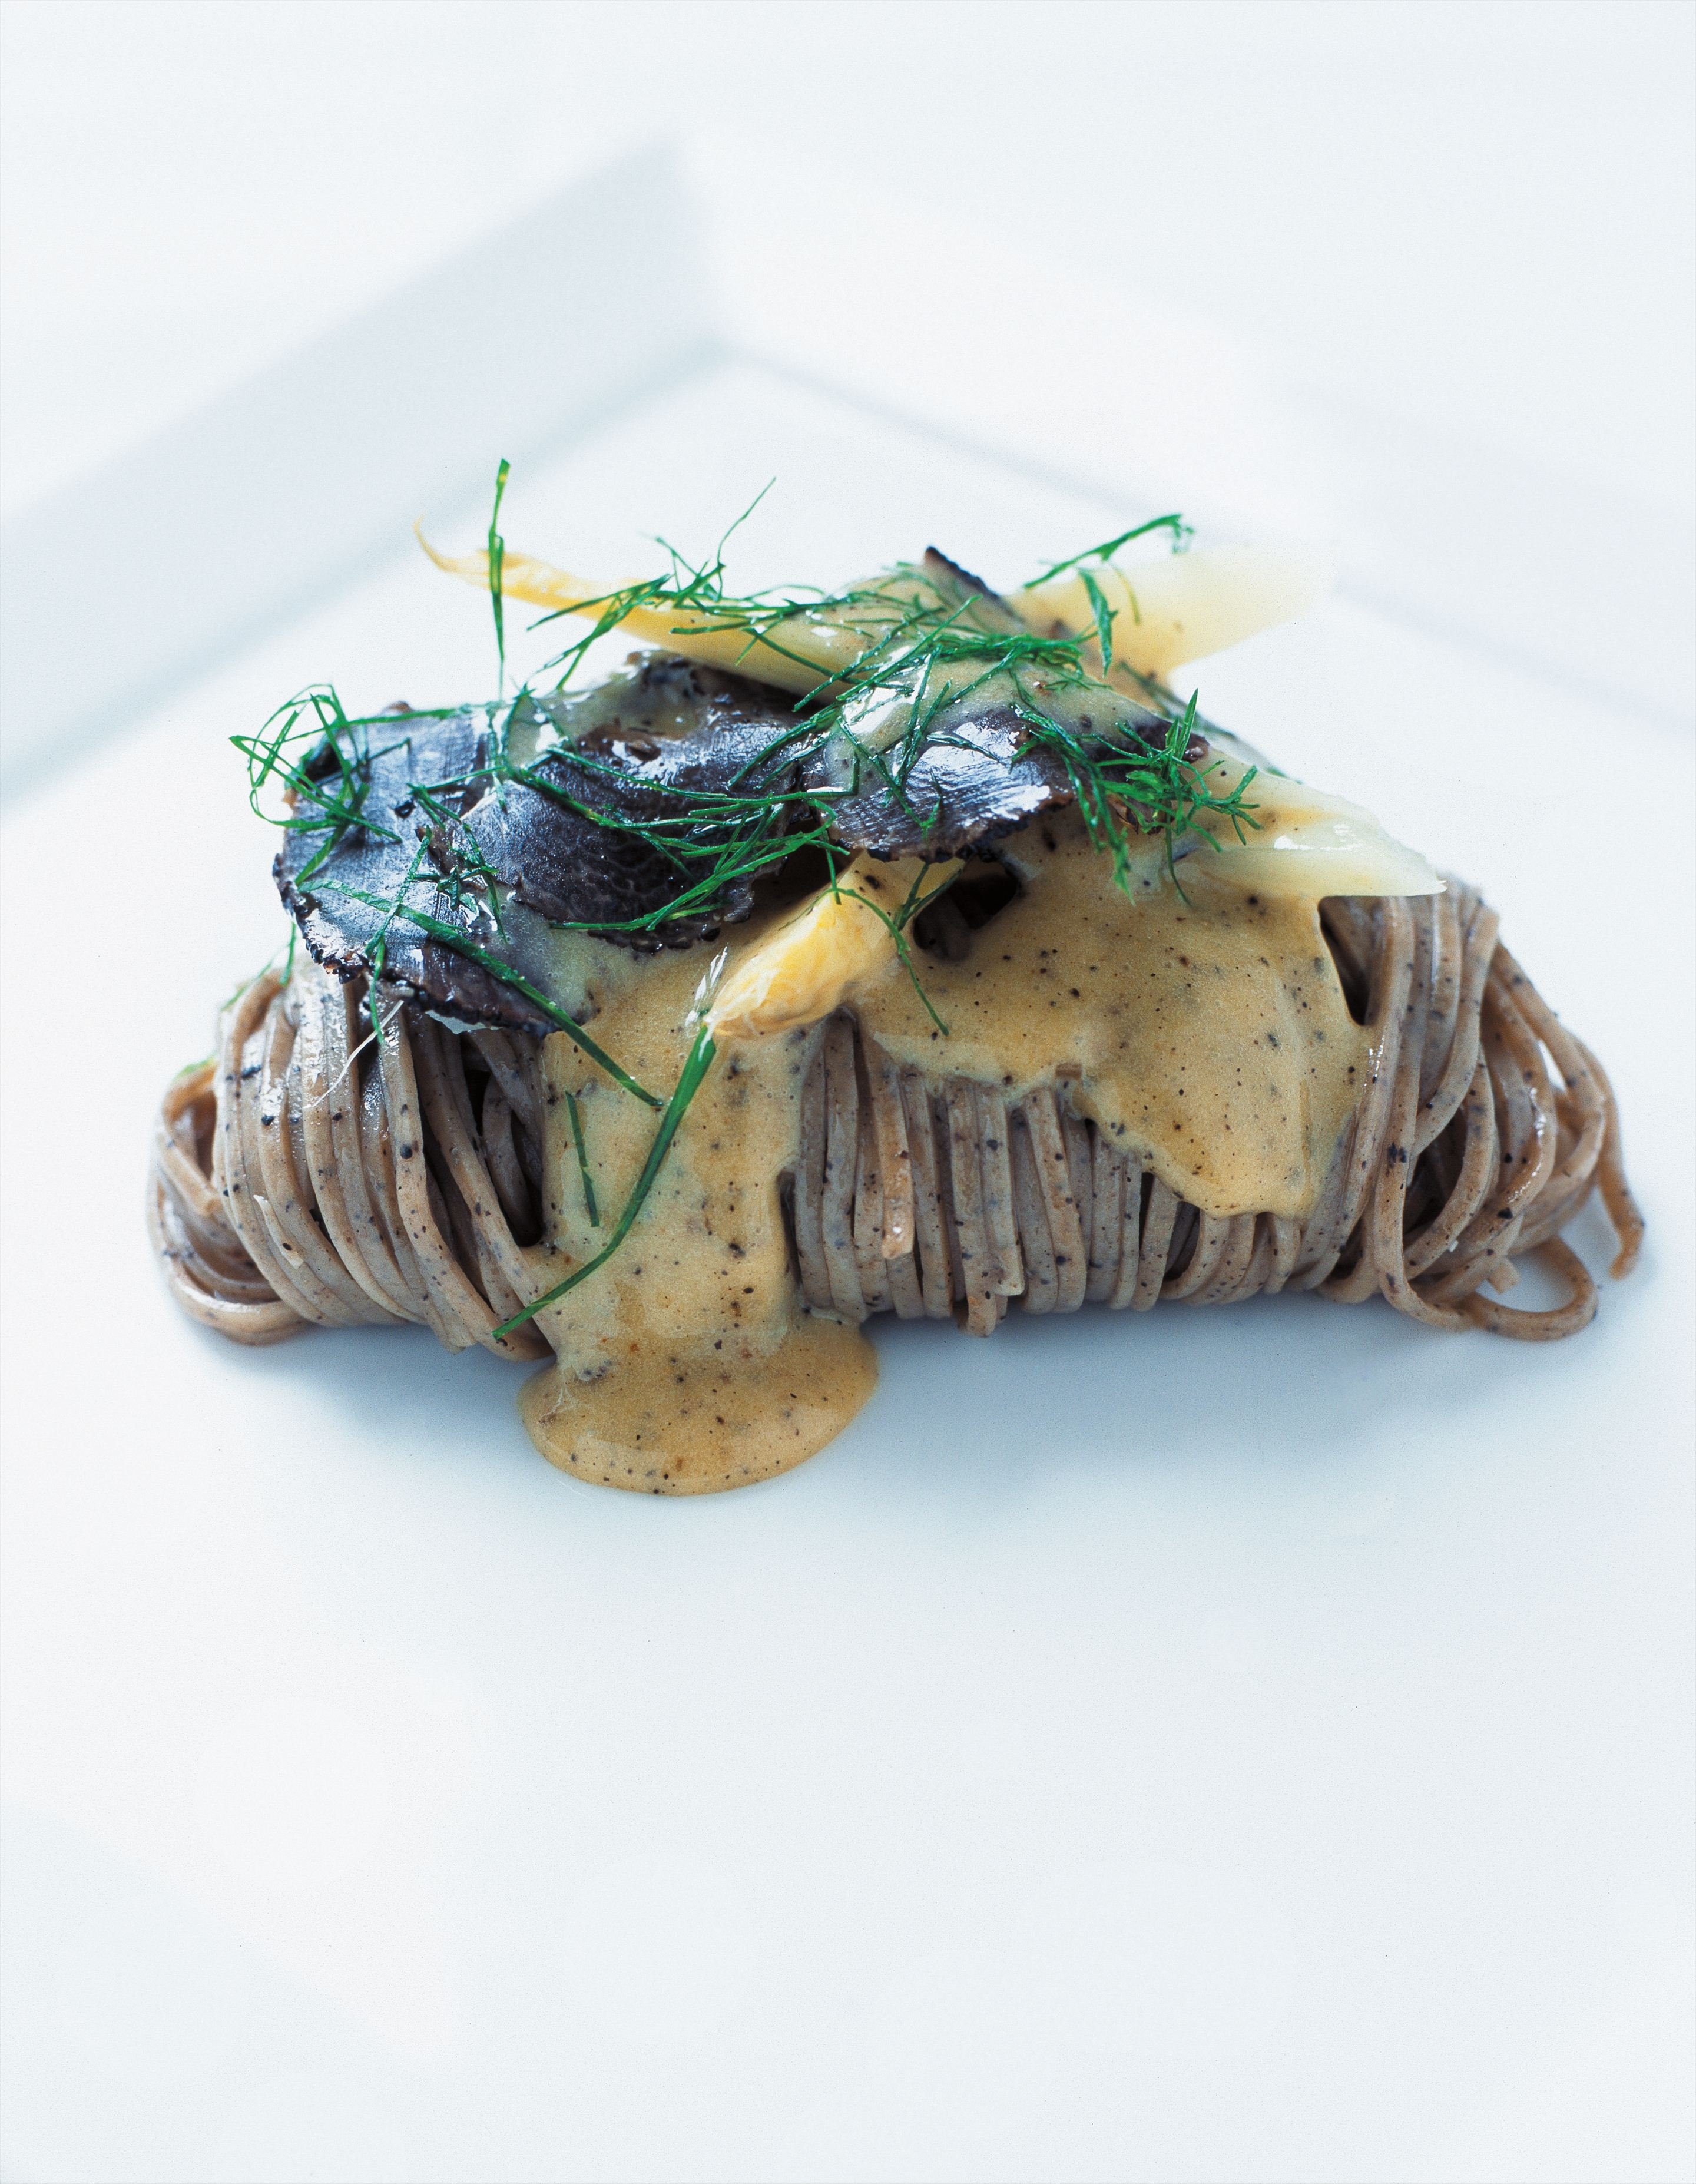 Truffle linguine with sautéed white asparagus and truffle hollandaise